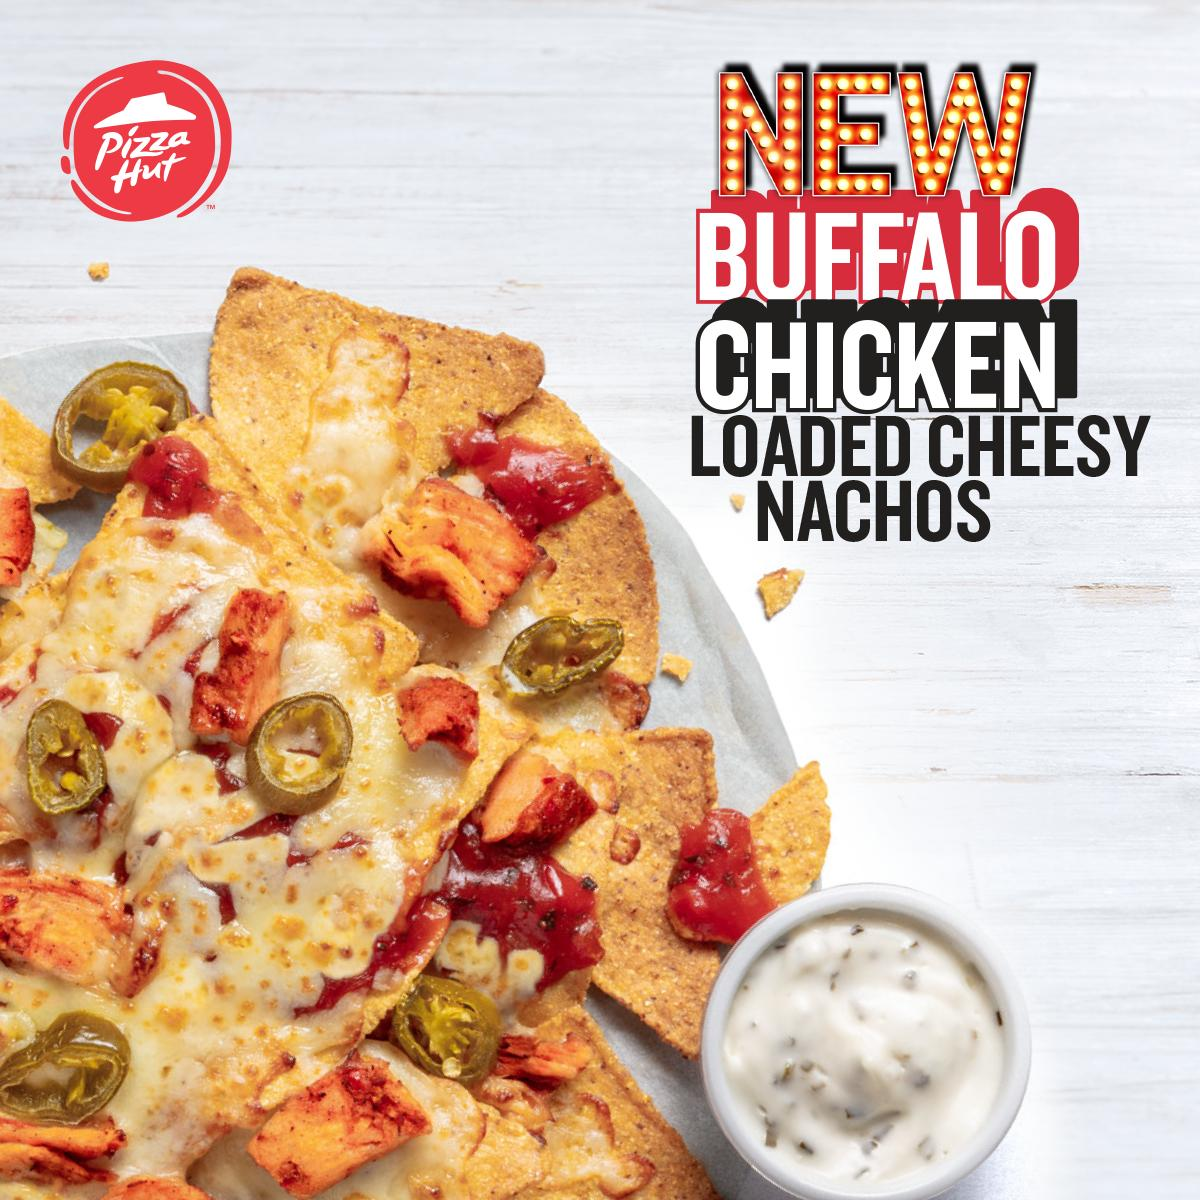 Have you tried our brand new Buffalo Chicken Loaded Cheesy Nachos yet?! Just how good do these look 😍 https://t.co/jg3dO02bW6